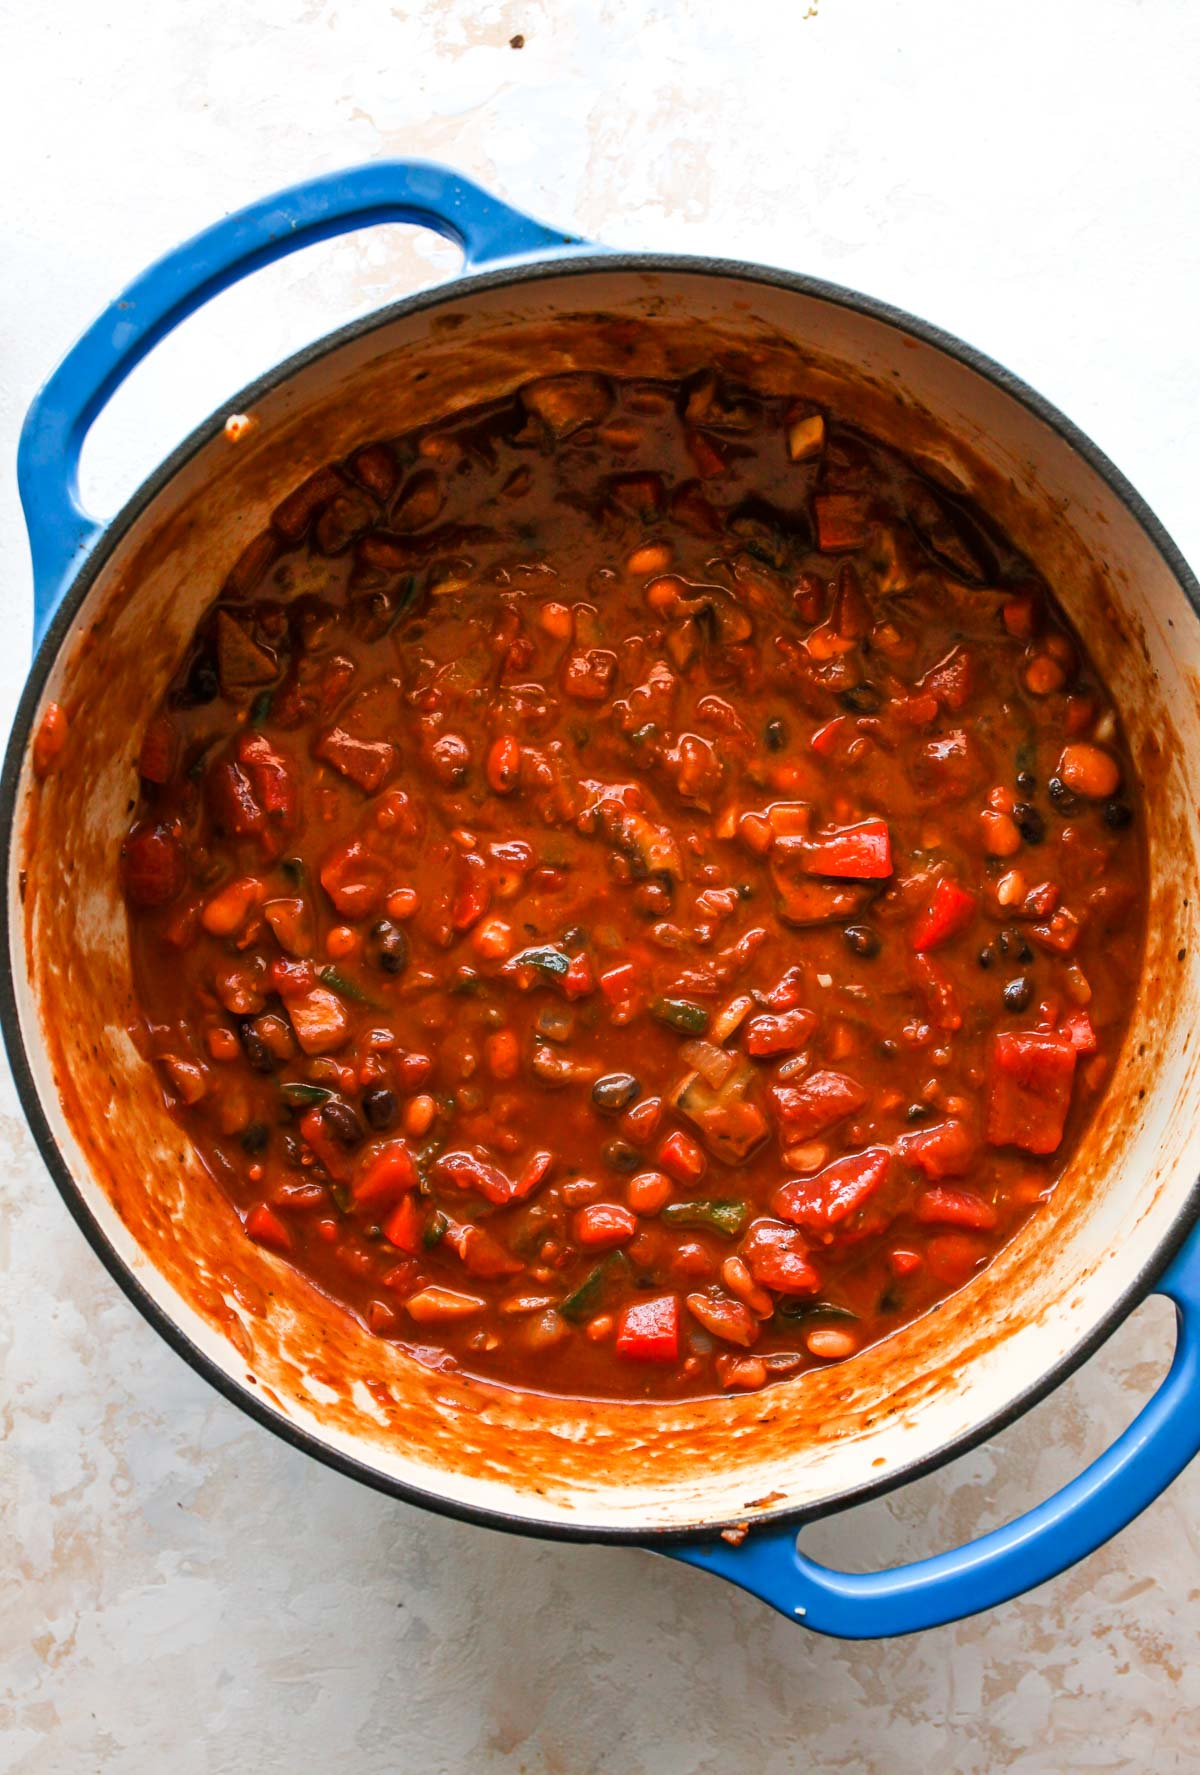 Tomato sauce, diced tomatoes, and beans being added to pot